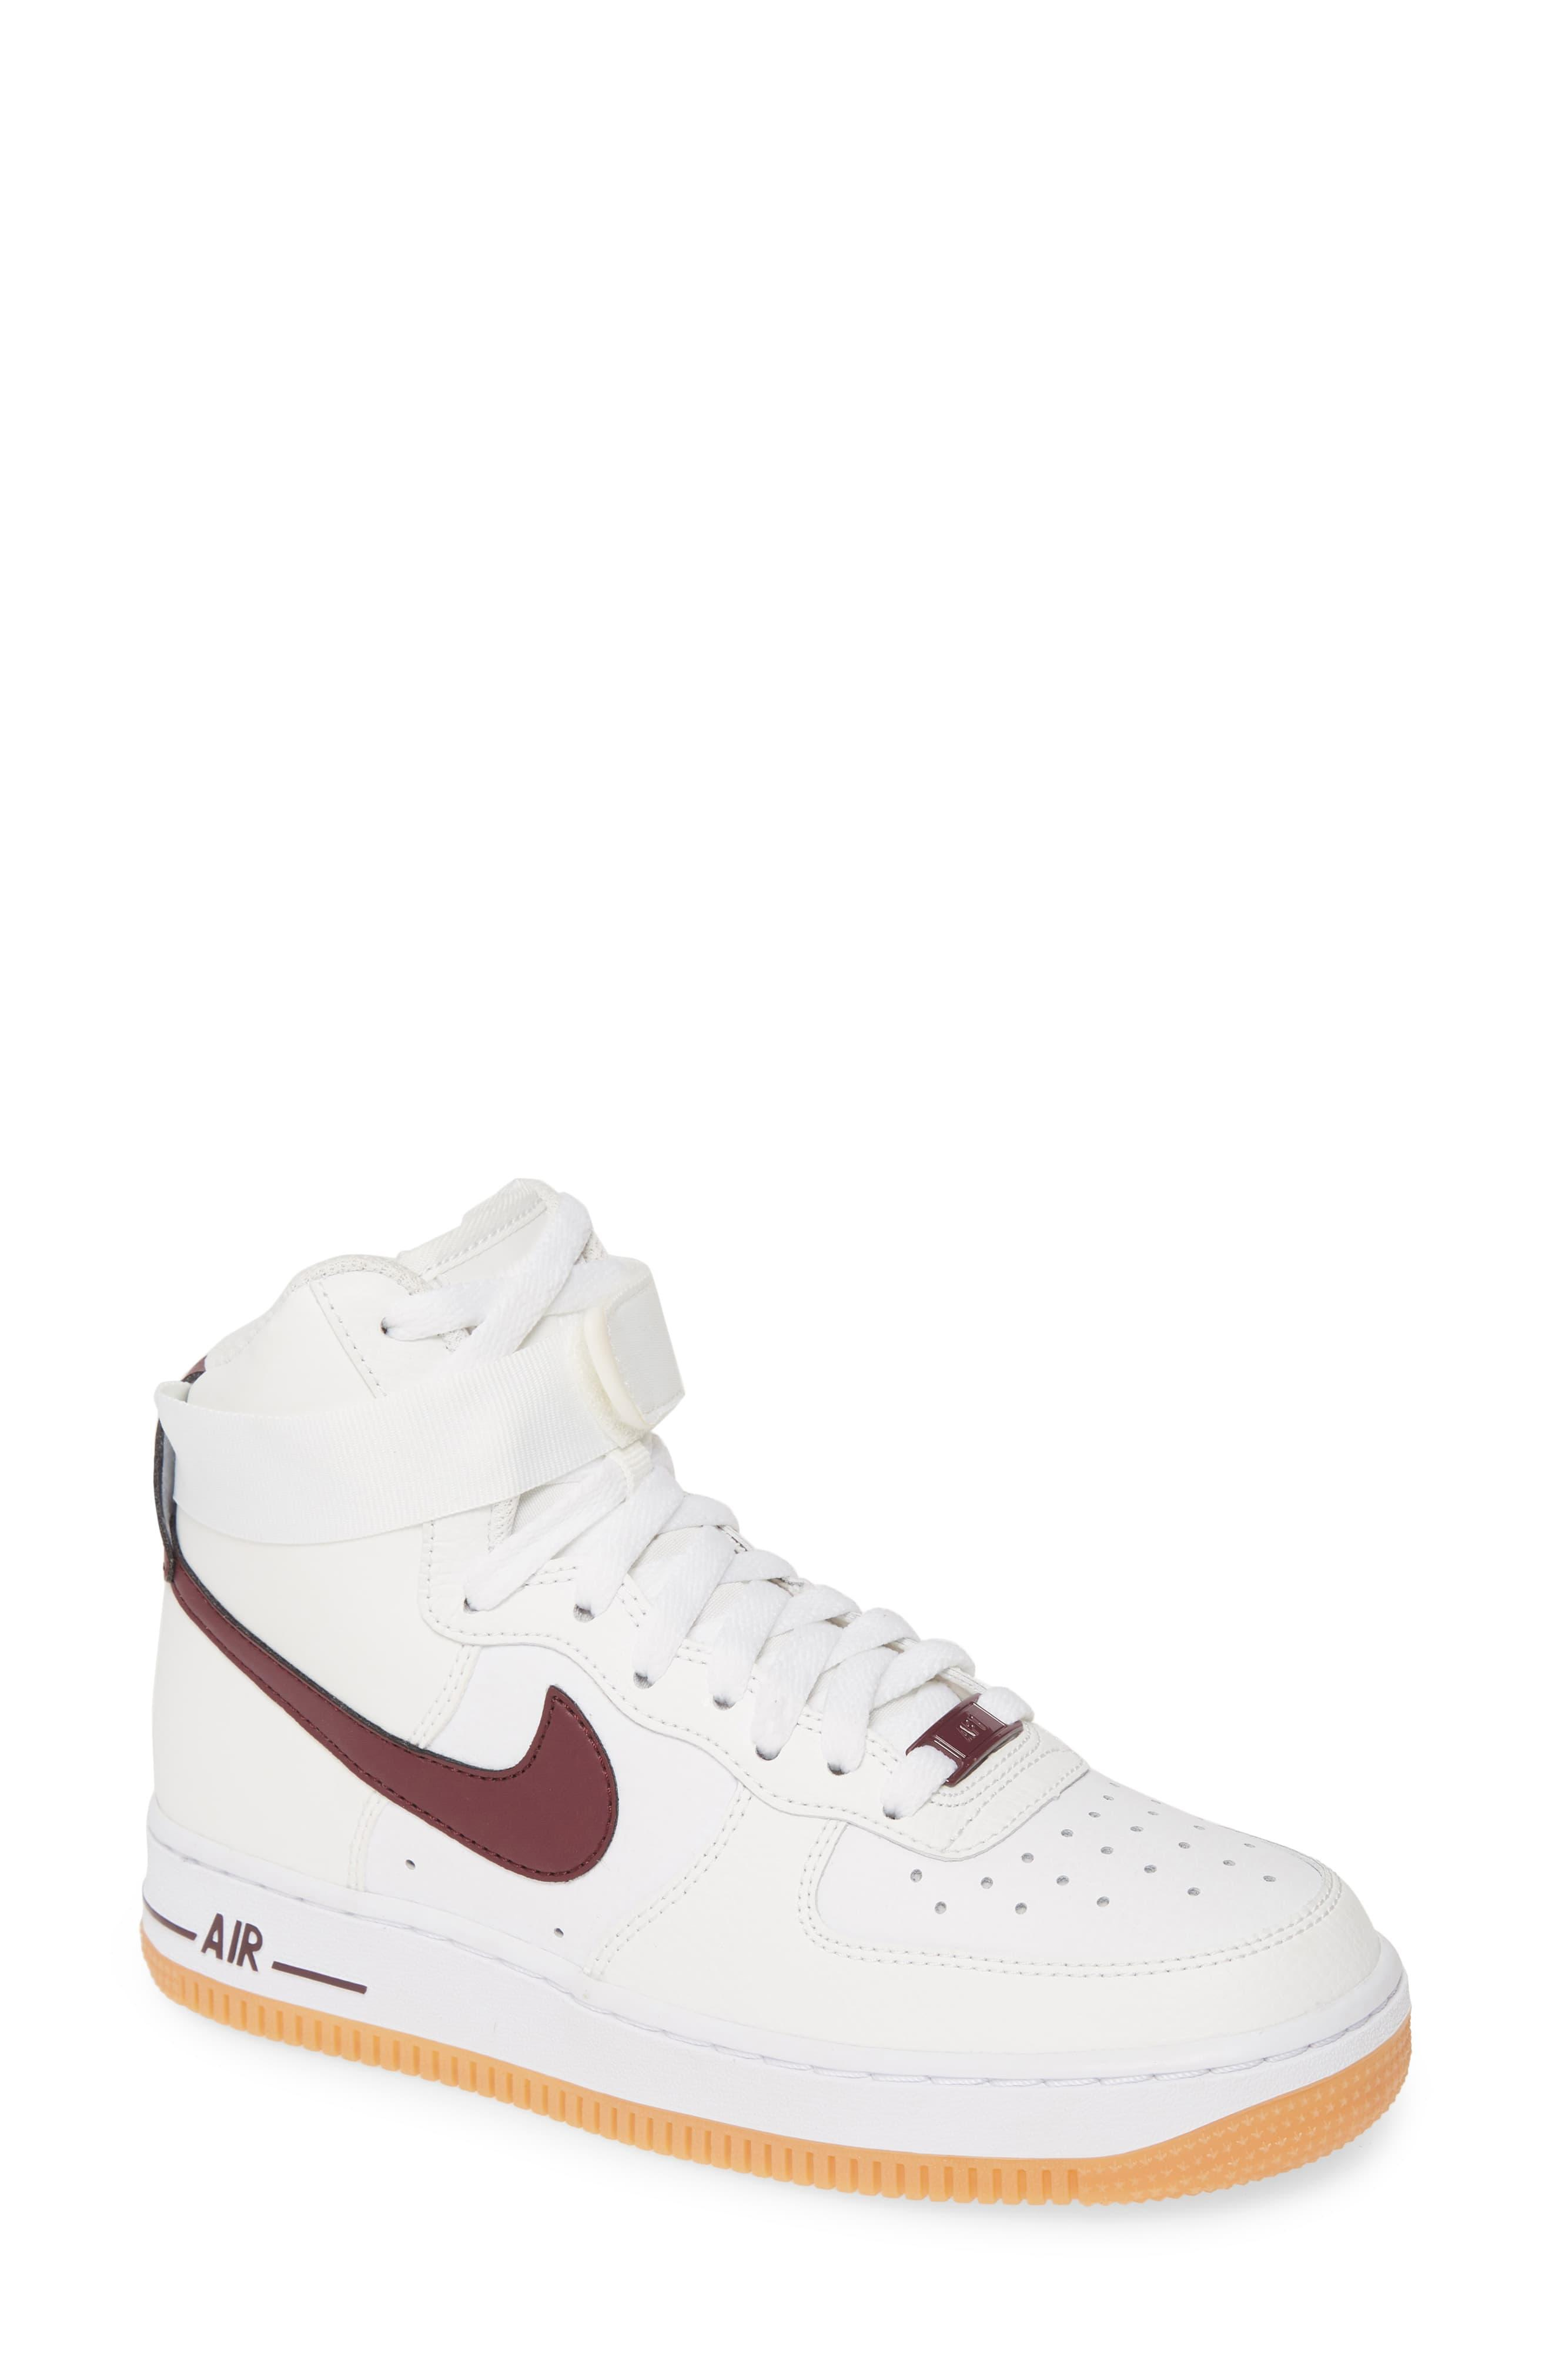 Nike Leather Air Force 1 High Top